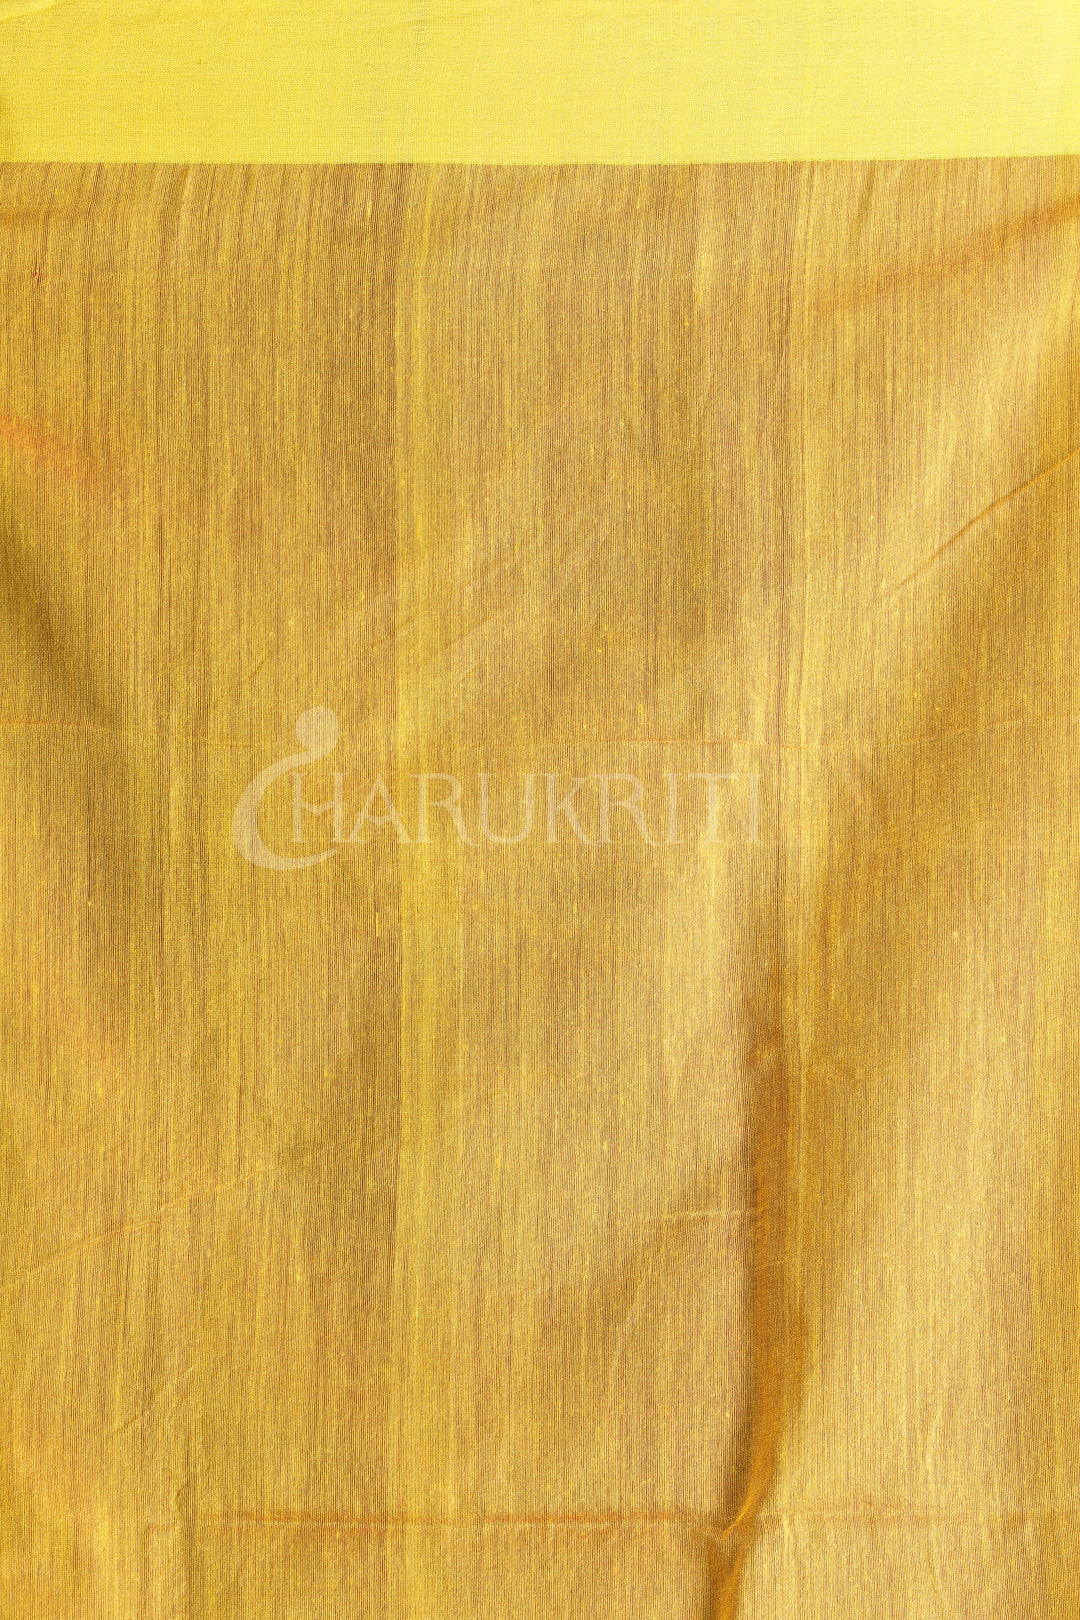 DEEP PINK BLENDED COTTON SAREE WITH WOVEN DESIGN - Charukriti